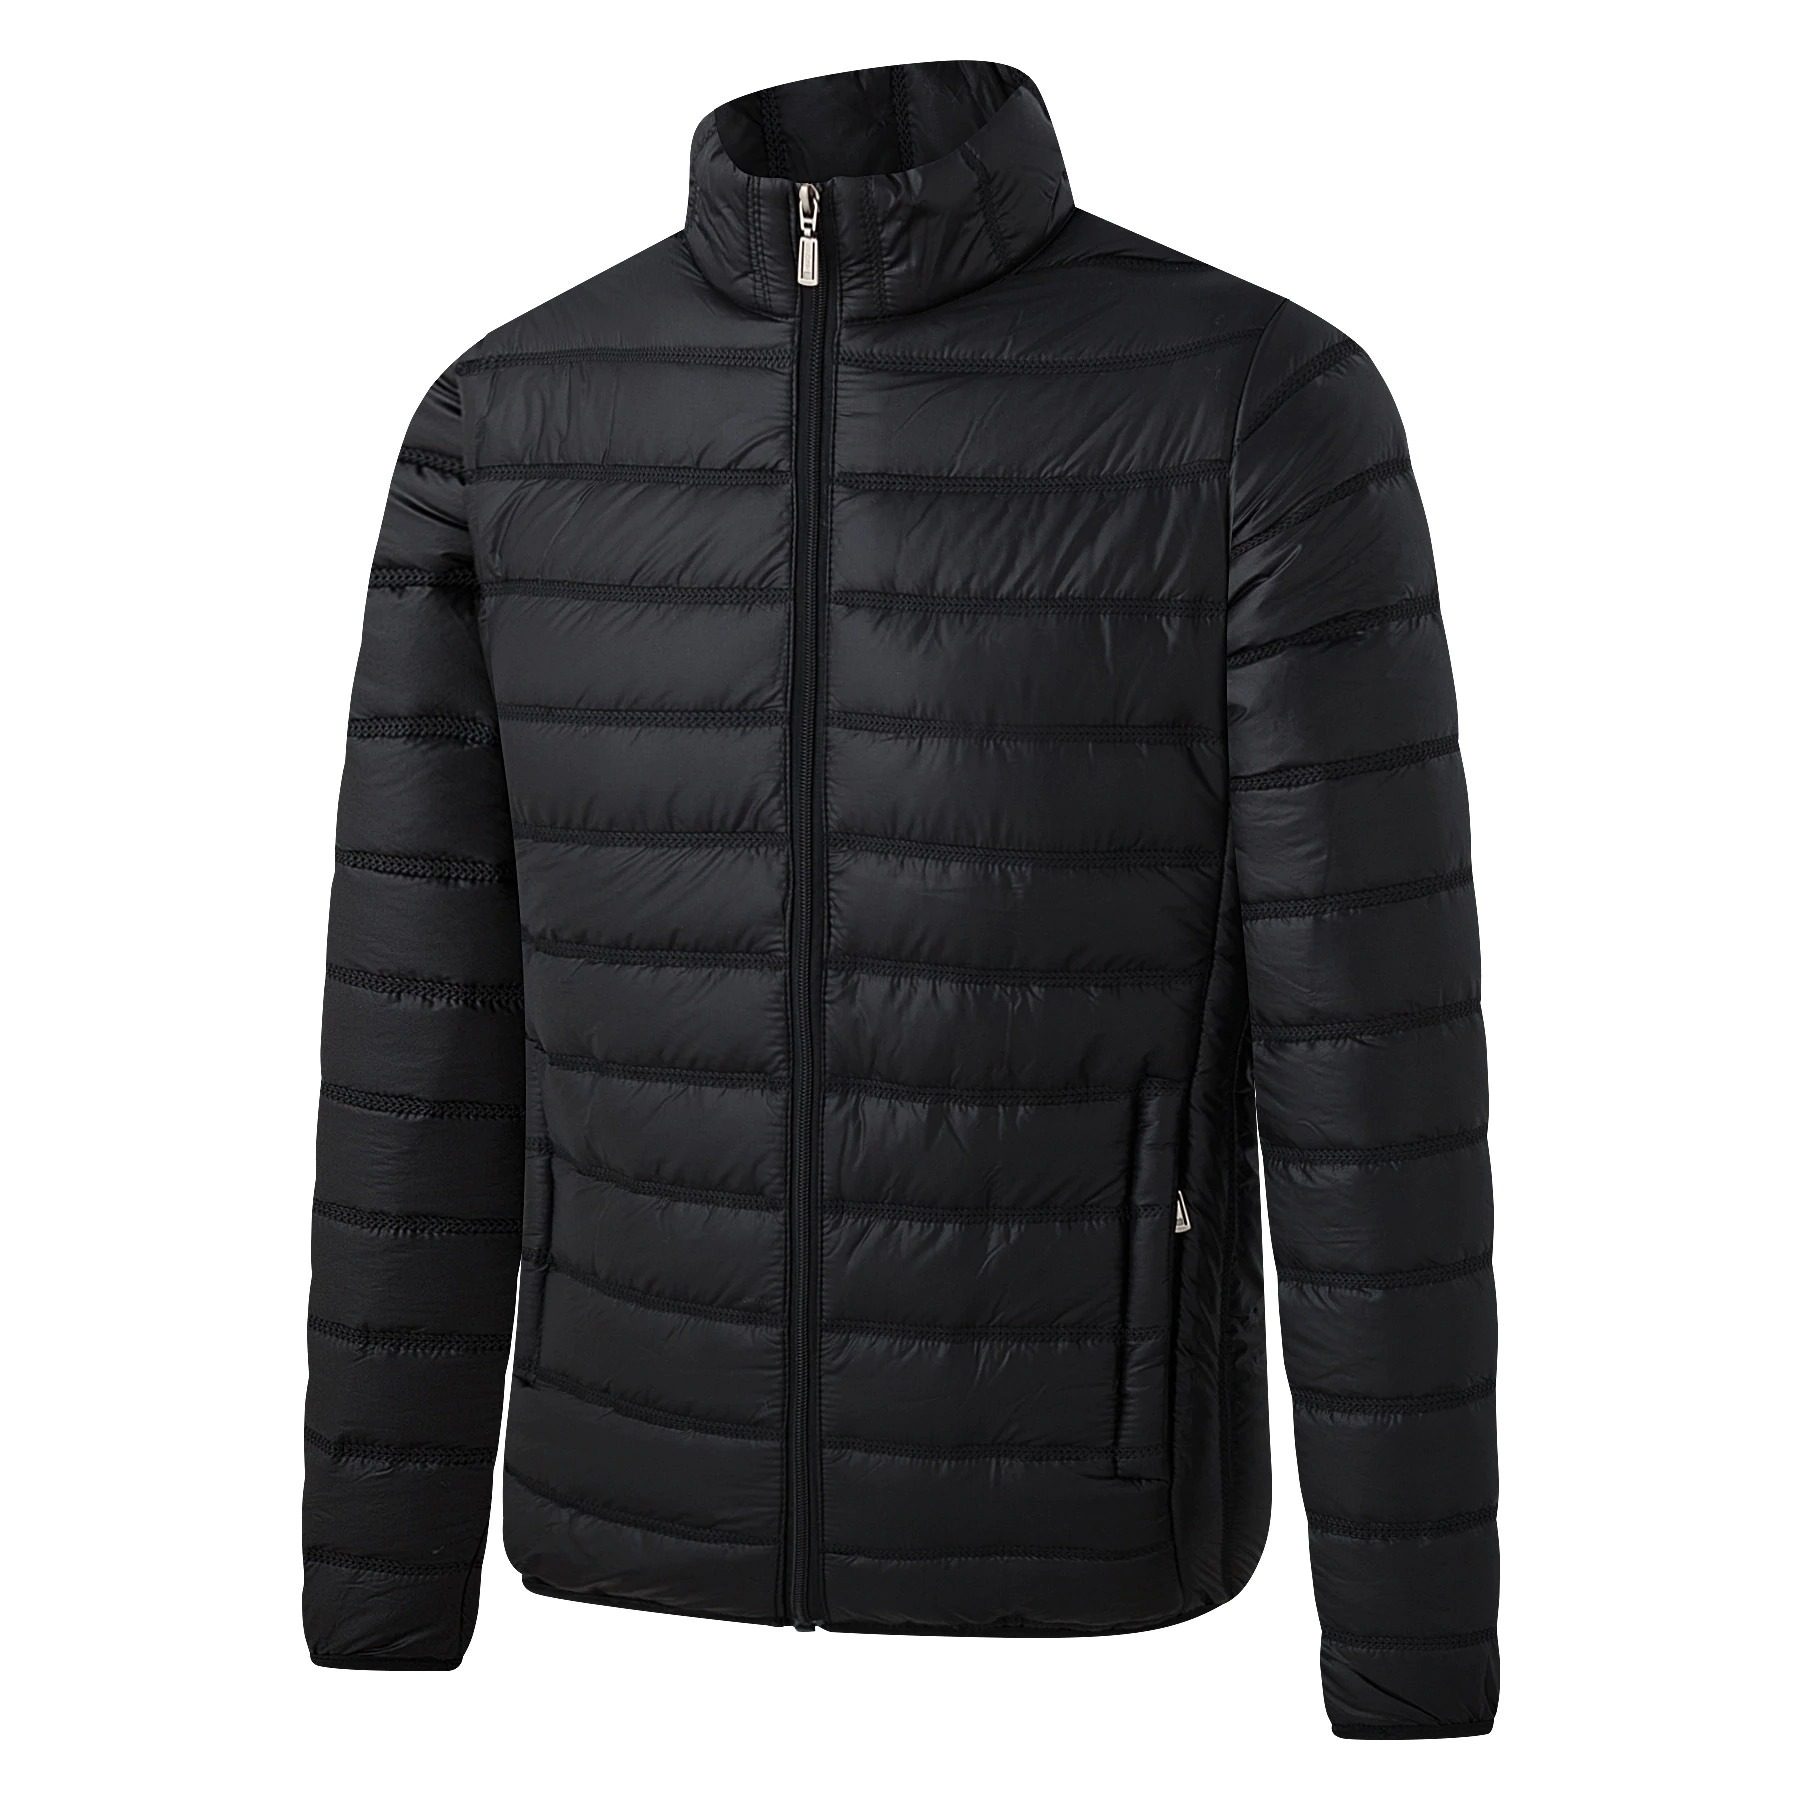 down cotton padded jacket casual all match fashion mens stand up collar thick solid color autumn large size 5258 - PewDiePie Merch